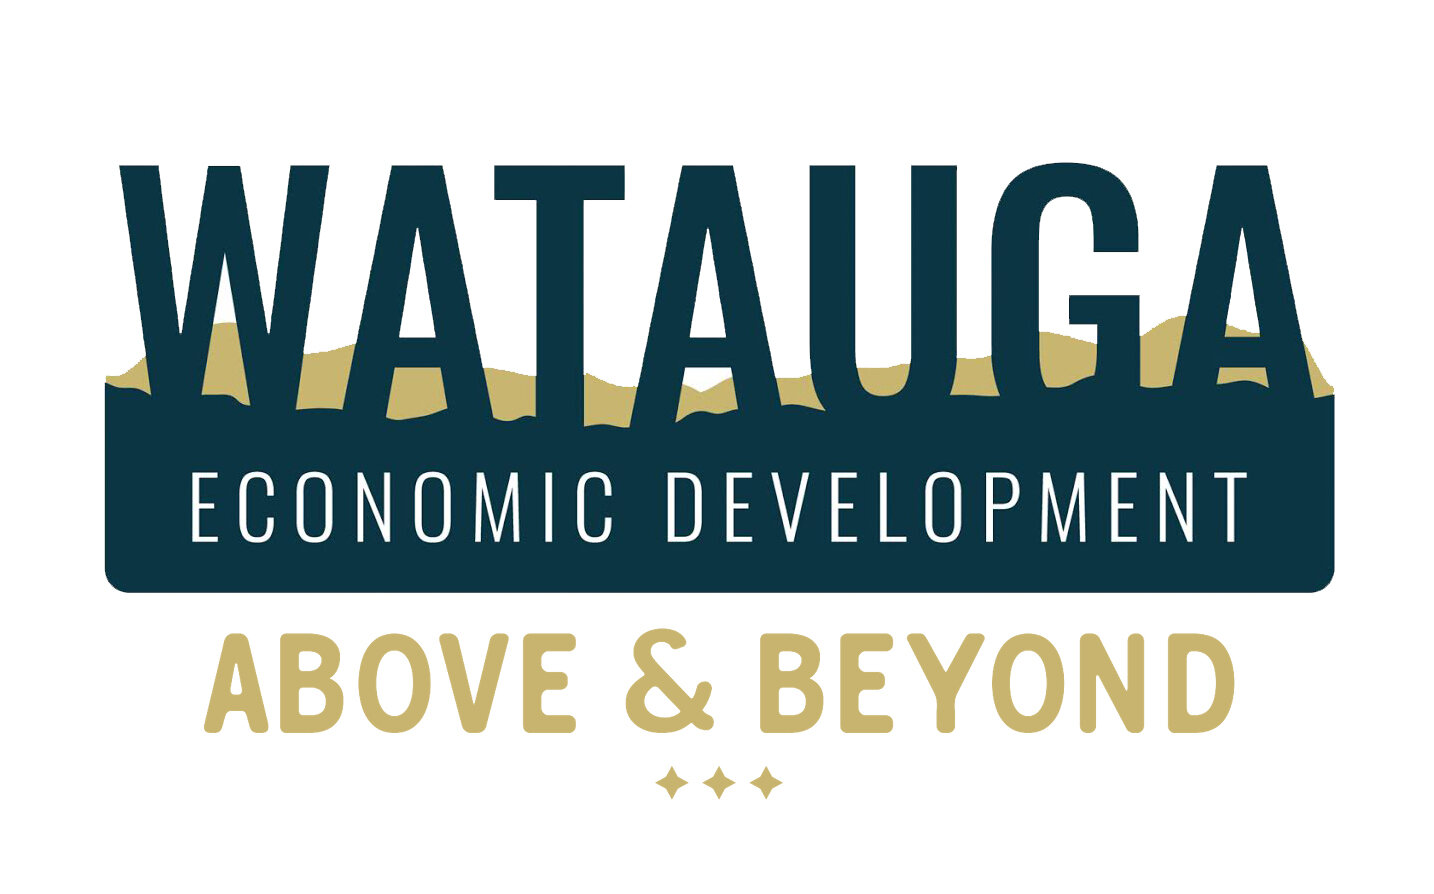 Watauga County Office of Economic Development Boone, NC  Watauga County Office of Economic Development is a local government department responsible for economic activities. We assists existing and start-up outdoor recreation industry businesses and attempt to recruit the same to locate in Watauga County.